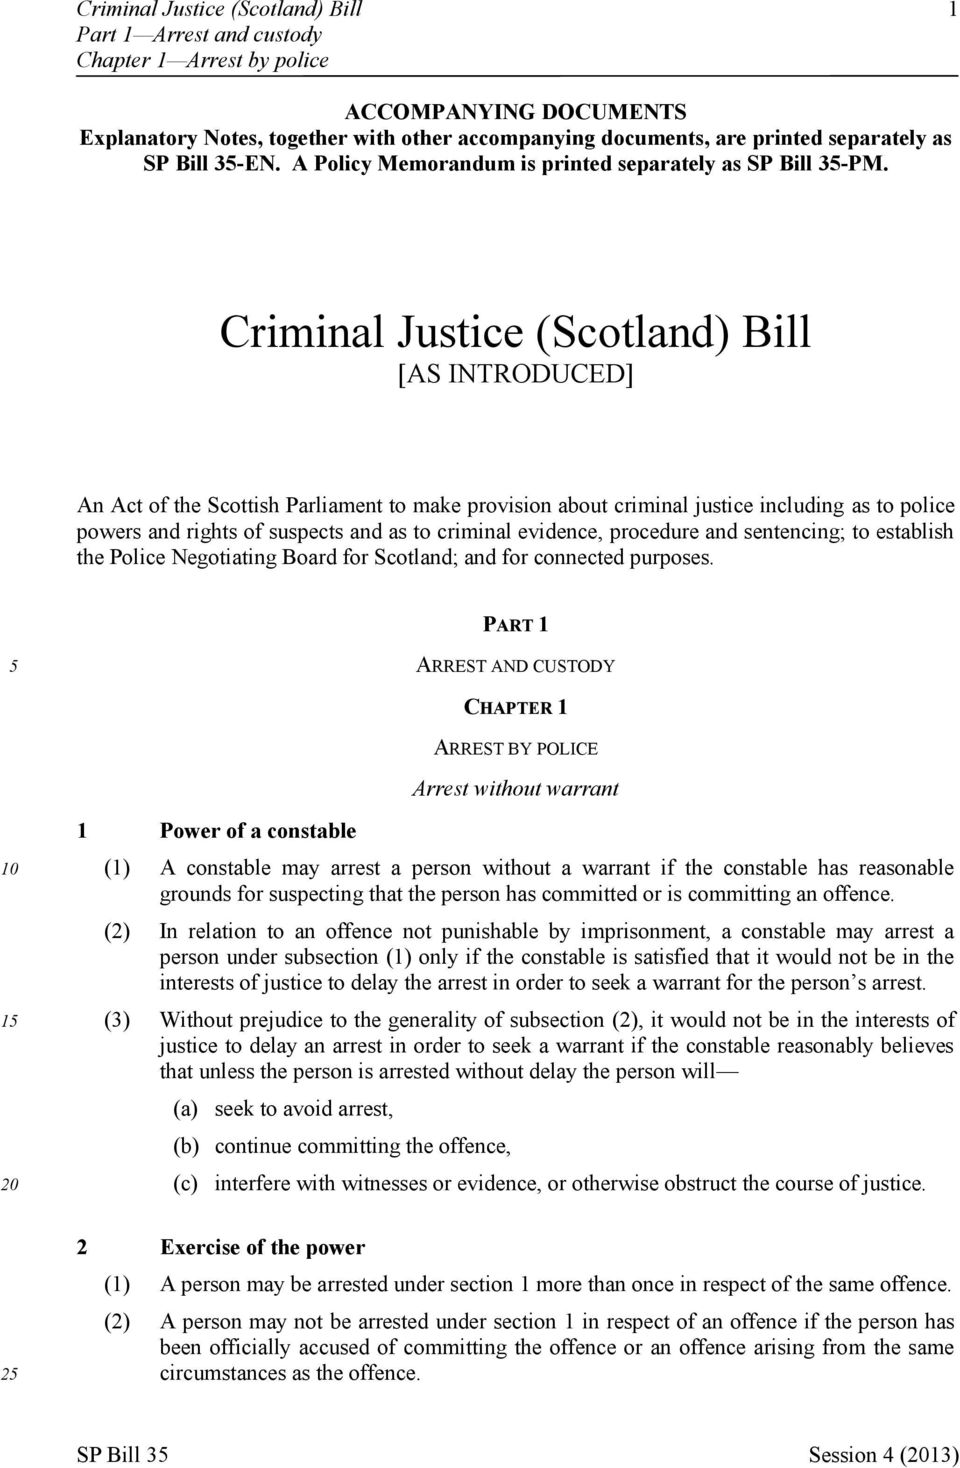 Criminal Justice (Scotland) Bill [AS INTRODUCED] An Act of the Scottish Parliament to make provision about criminal justice including as to police powers and rights of suspects and as to criminal